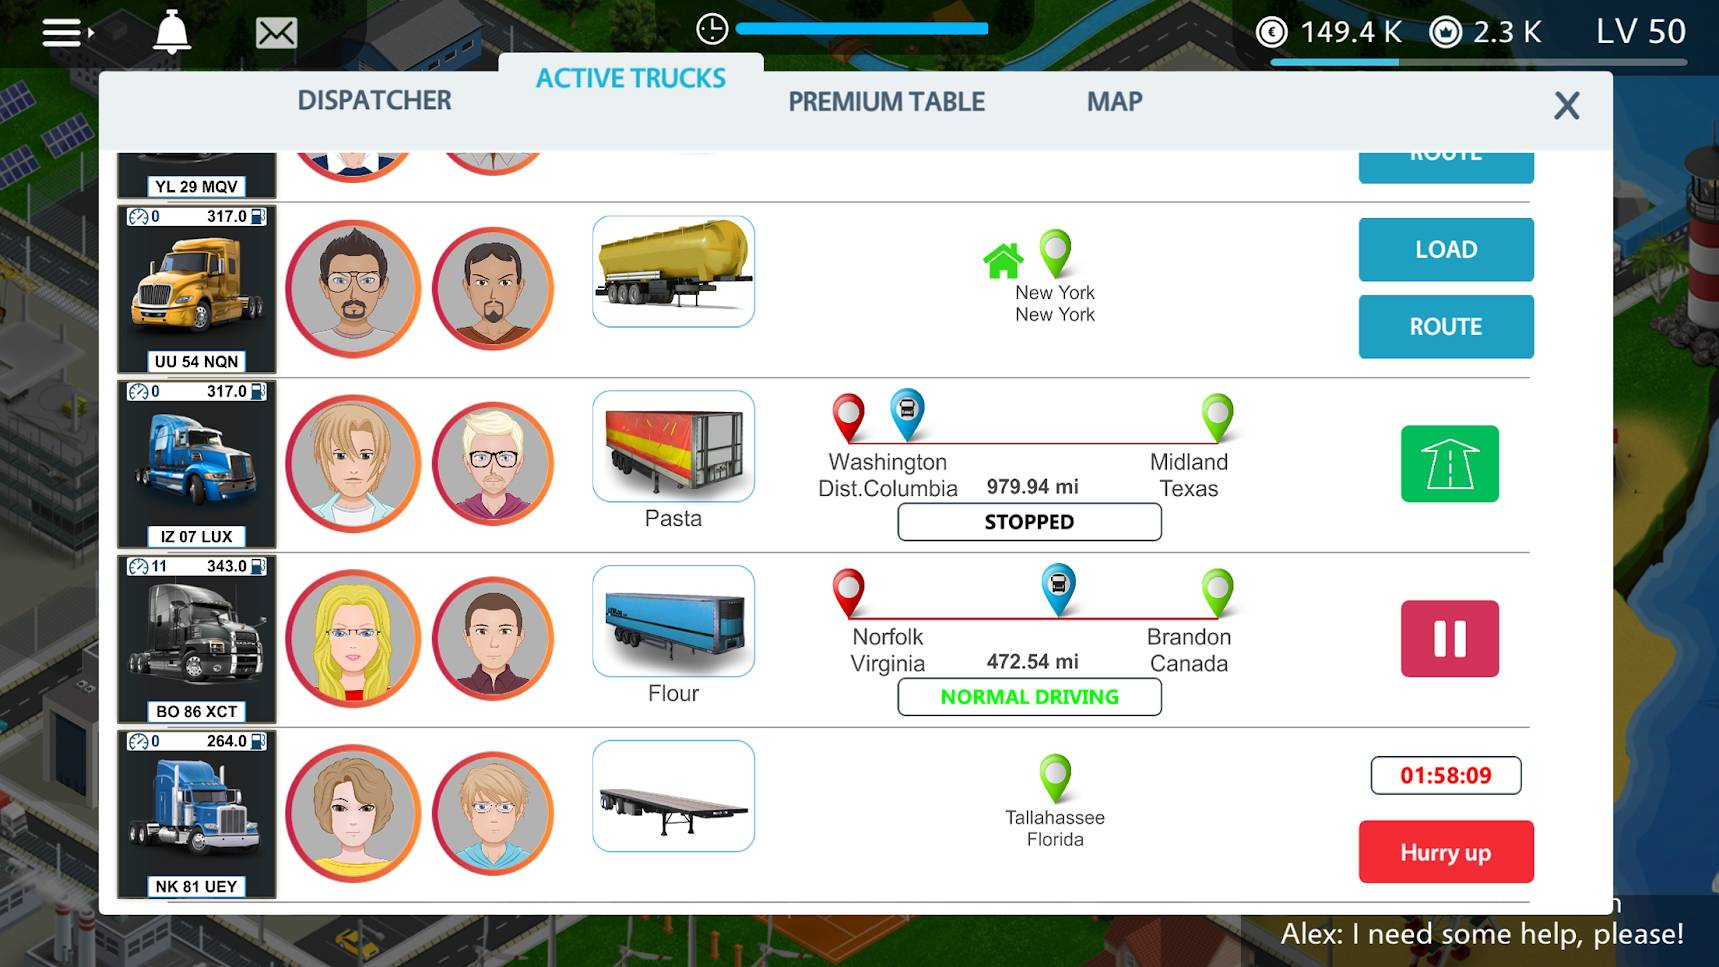 Aflaai Virtual Truck Manager